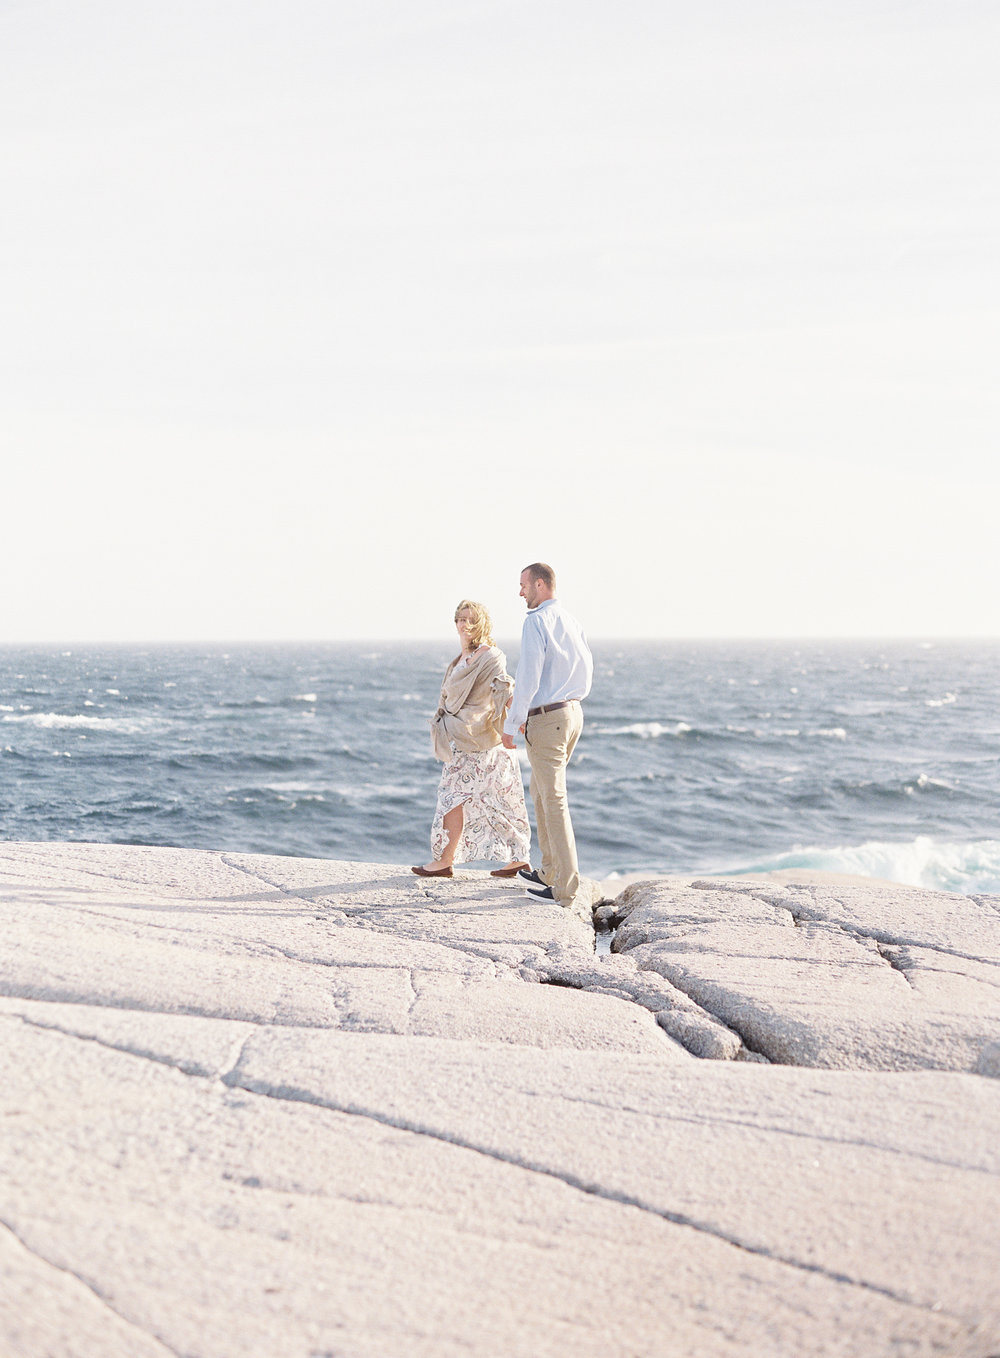 Jacqueline Anne Photography - Alex and Andrew Engagement at Peggy's Cove - Halifax-116.jpg